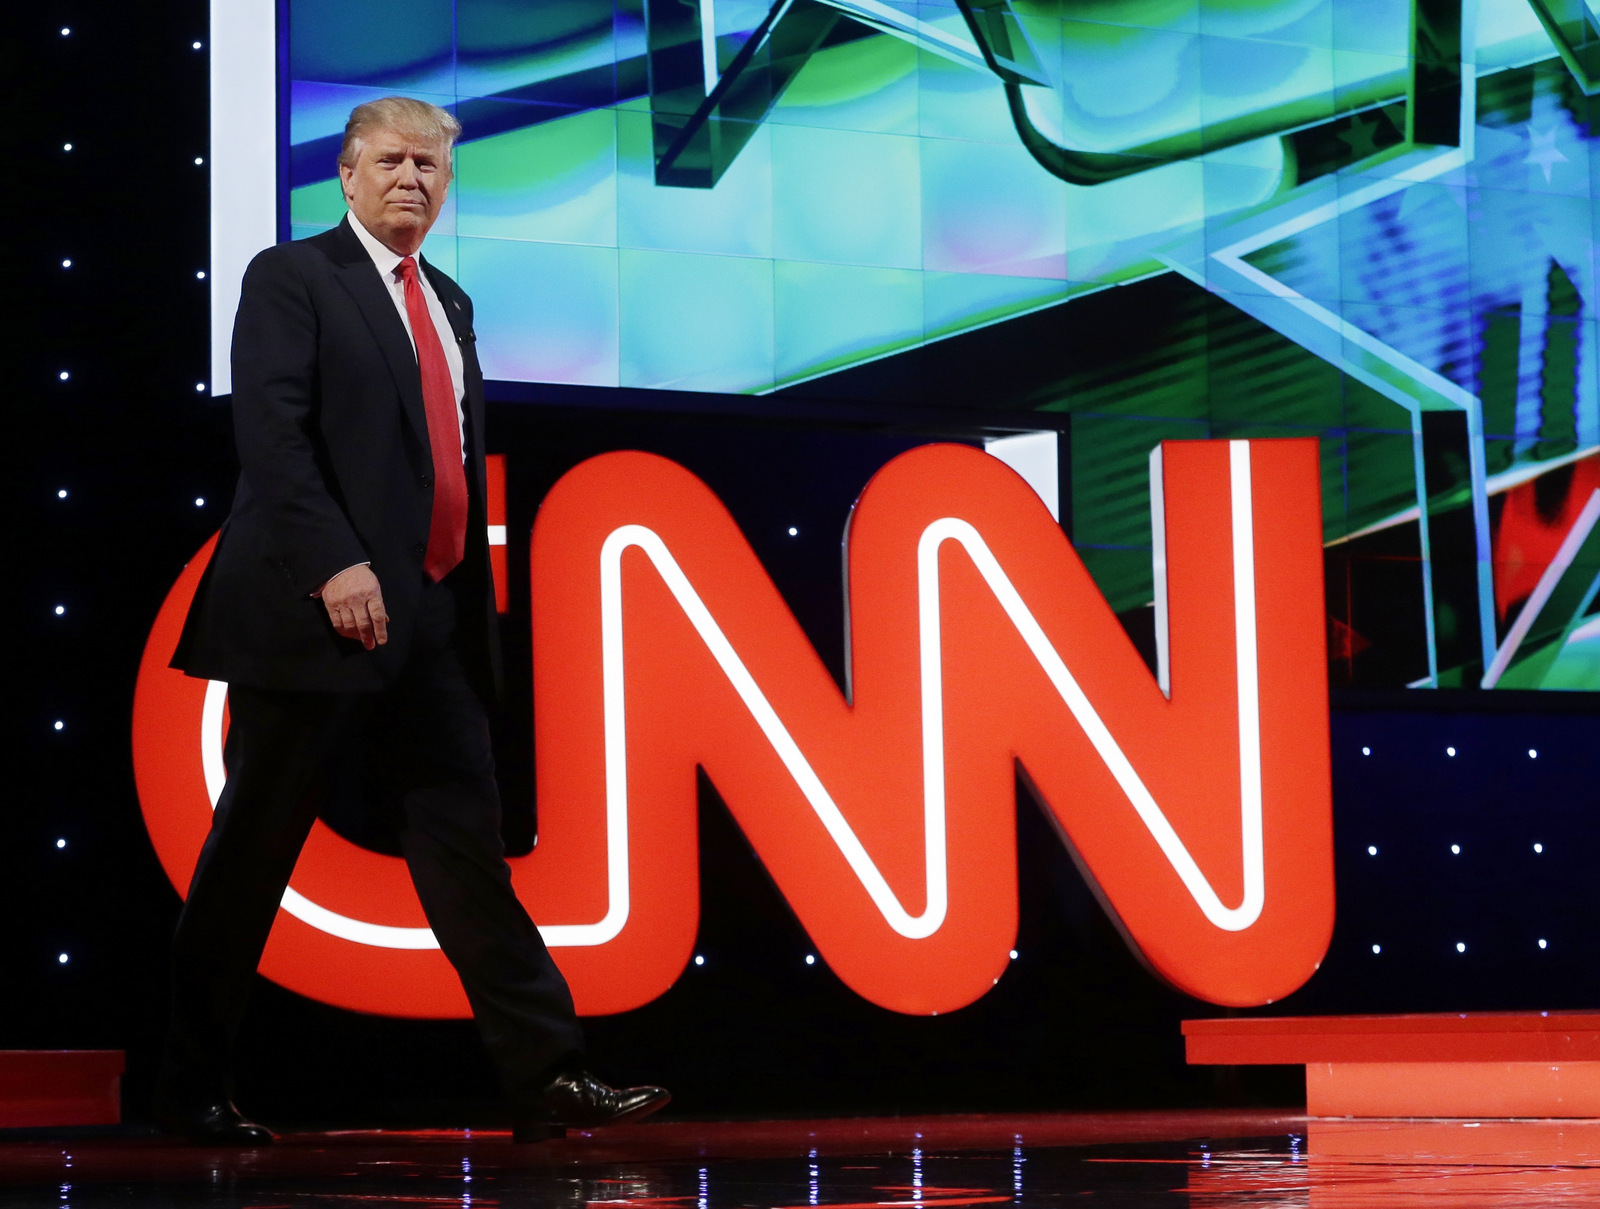 Donald Trump enters the debate hall during the Republican presidential debate sponsored by CNN, March 10, 2016. (AP/Alan Diaz)